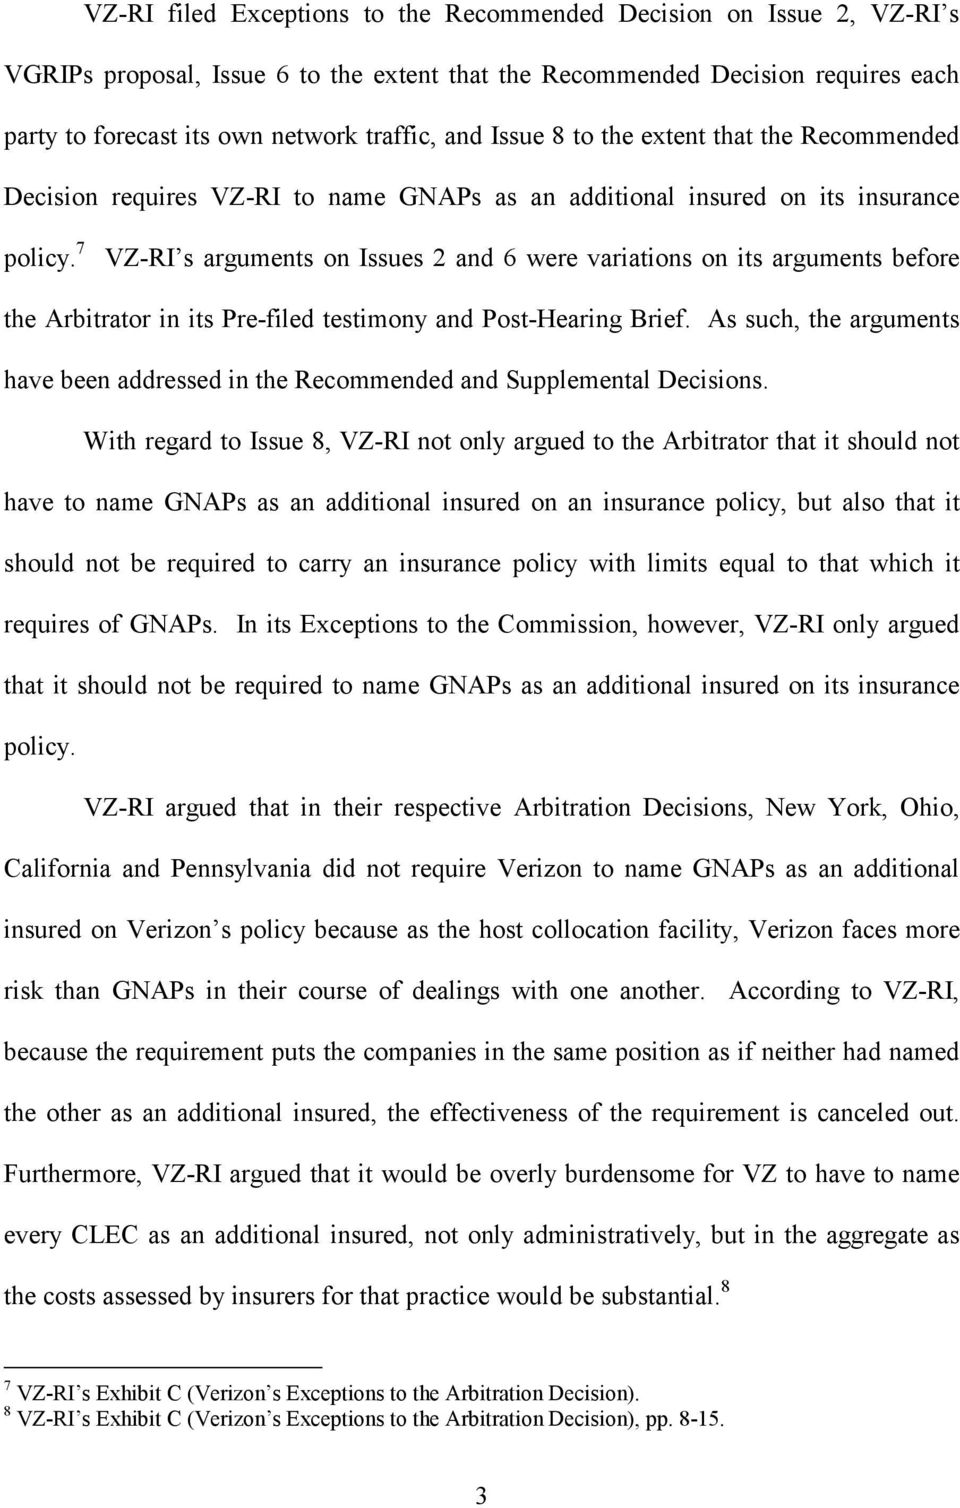 7 VZ-RI s arguments on Issues 2 and 6 were variations on its arguments before the Arbitrator in its Pre-filed testimony and Post-Hearing Brief.